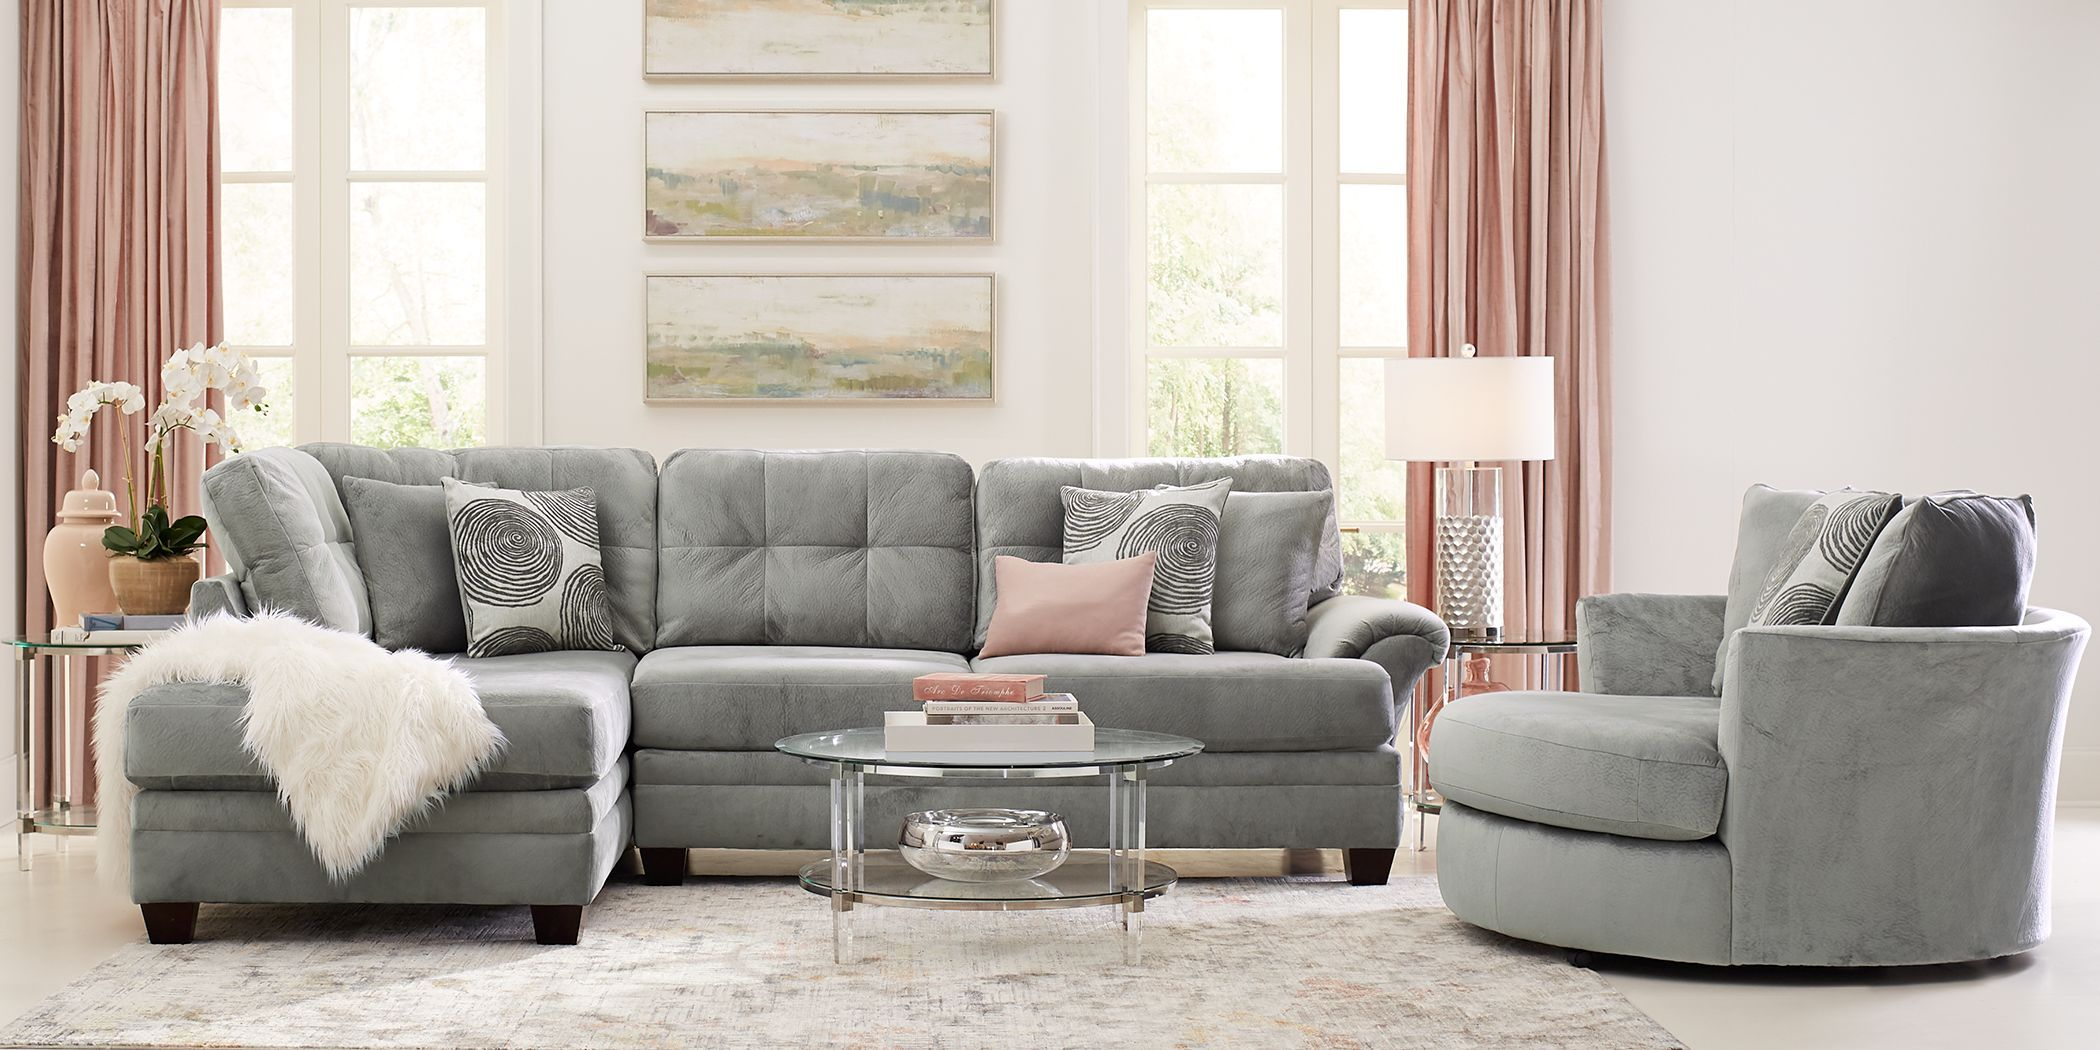 Dharma Place Gray 2 Pc Sectional Rooms To Go Living Room Sets